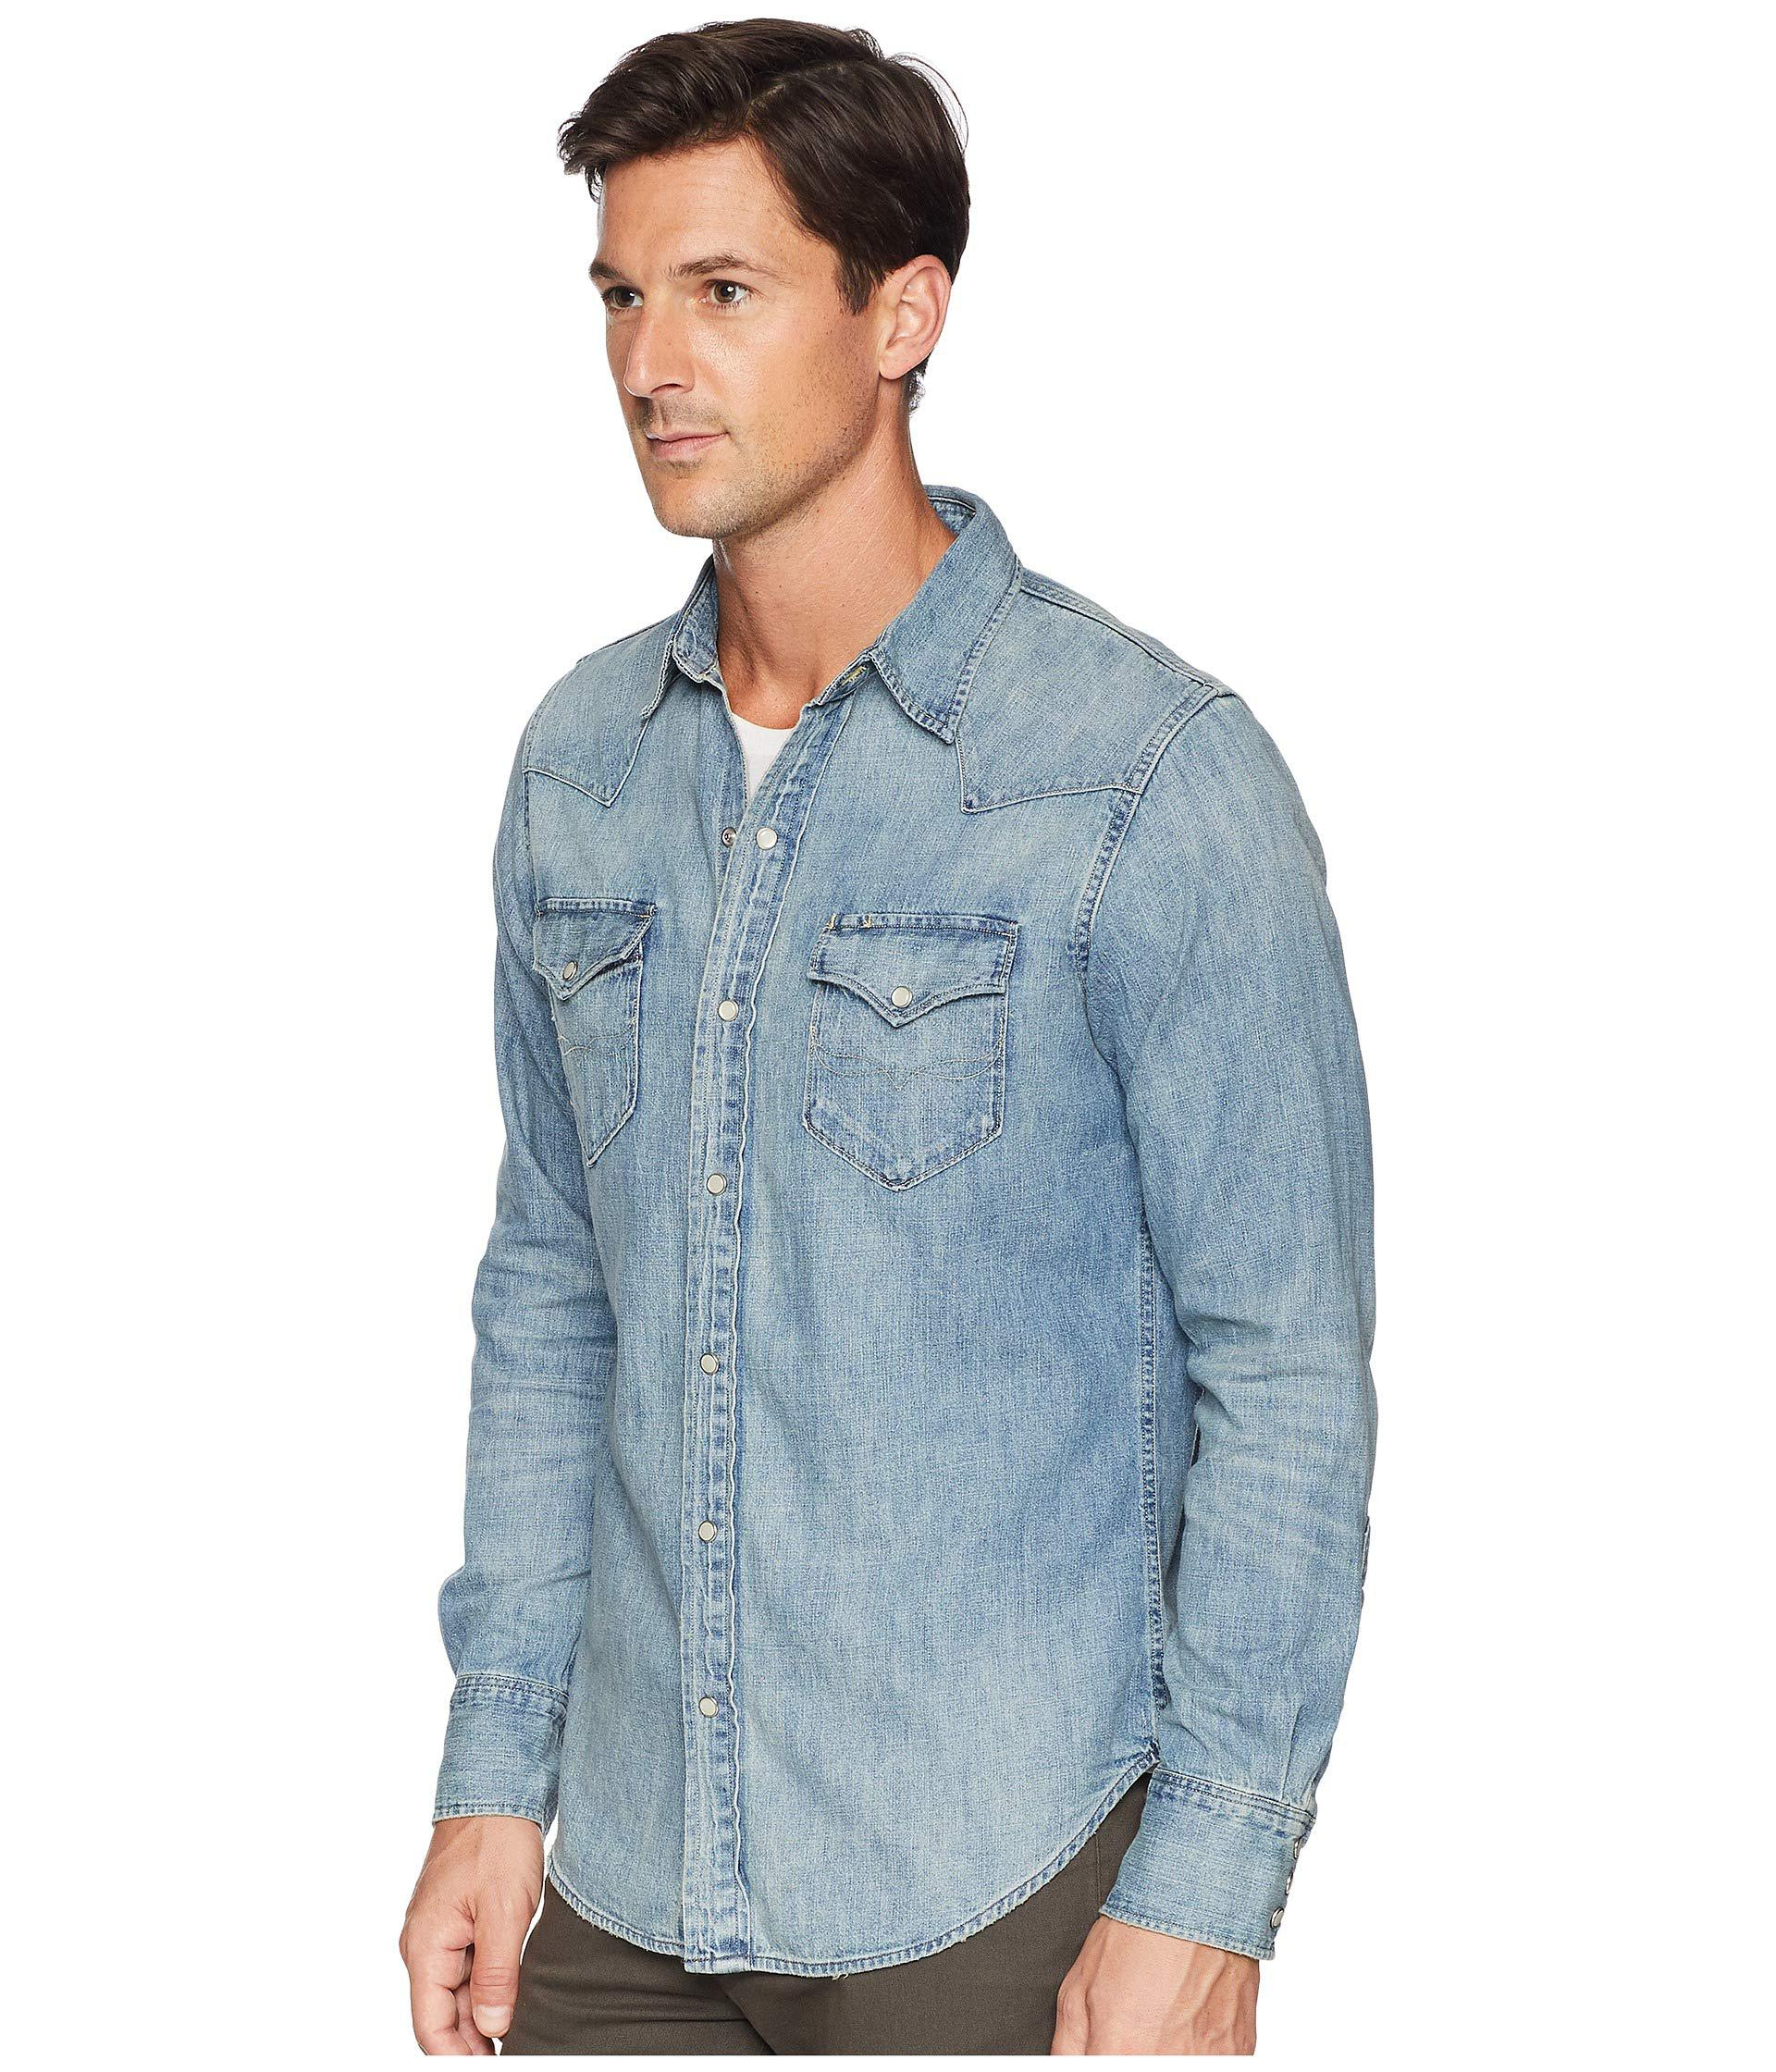 5eb97d72d4 Lyst - Polo Ralph Lauren Classic Fit Denim Western Sport Shirt in Blue for  Men - Save 23.529411764705884%